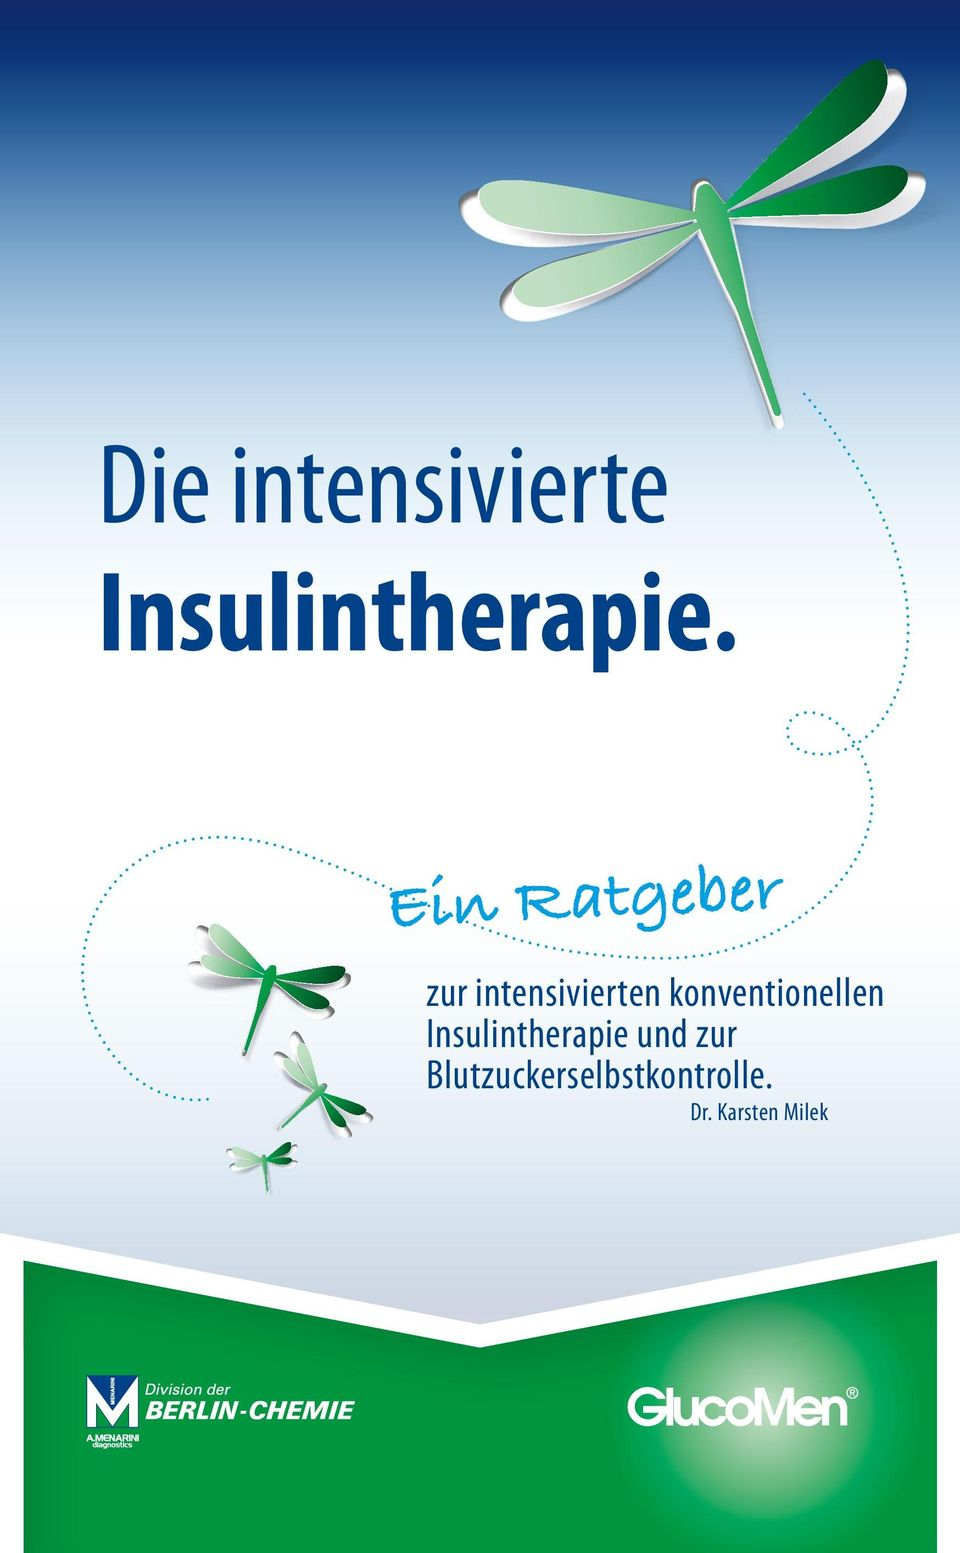 konventionellen Insulintherapie und